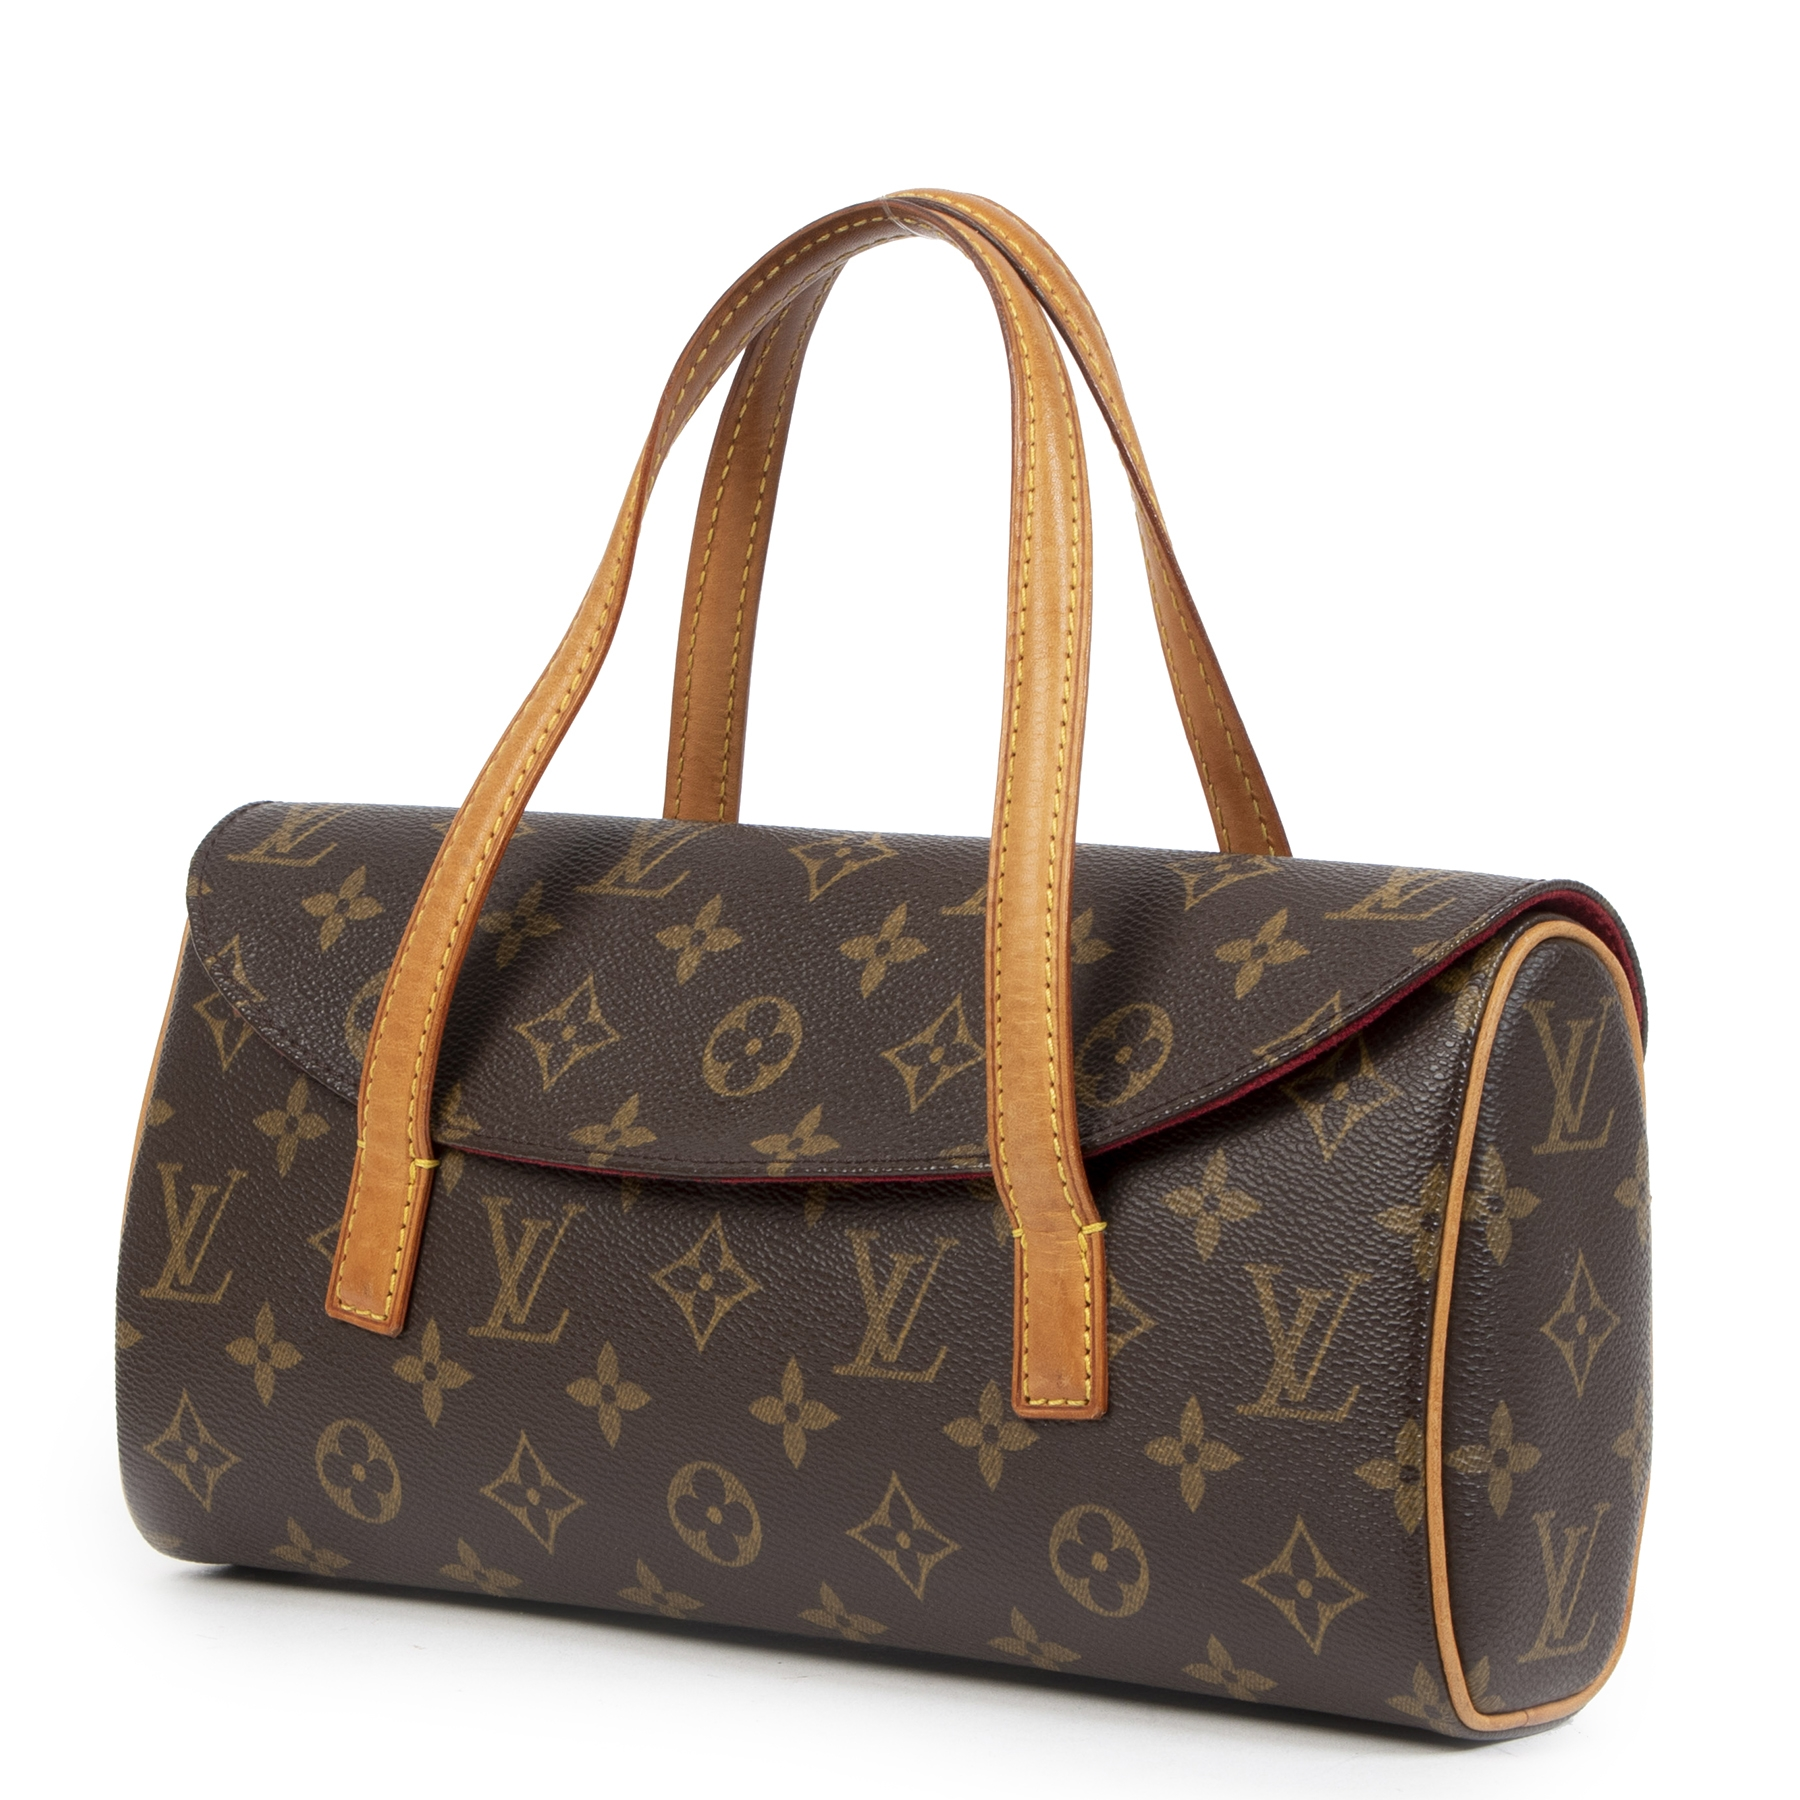 authentic second-hand vintage Louis Vuitton Monogram Sonatine Bag buy online webshop LabelLOV